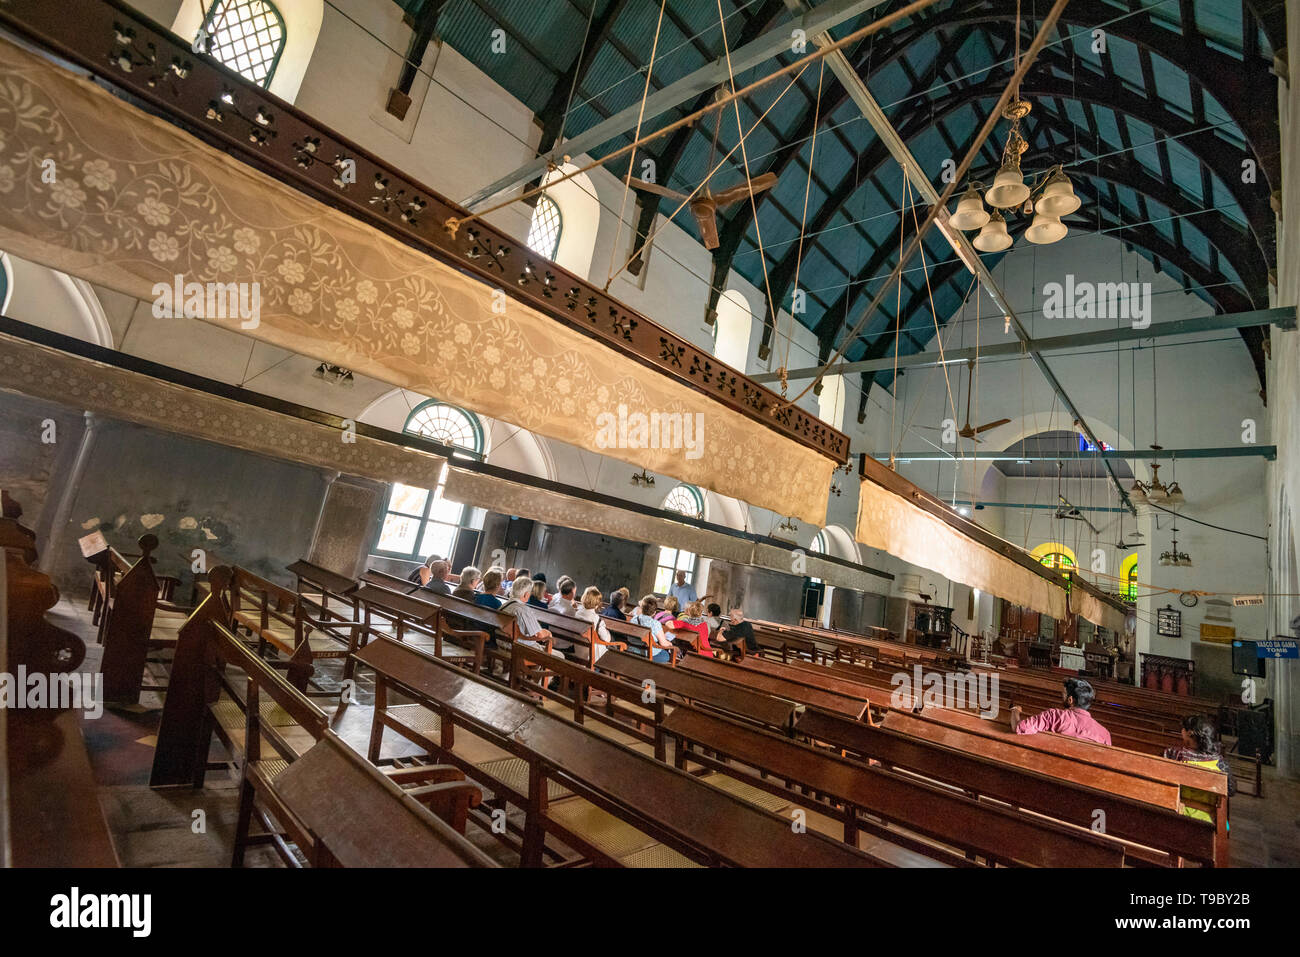 Horizontal interior view of St. Francis Church in Fort Kochi, India. - Stock Image